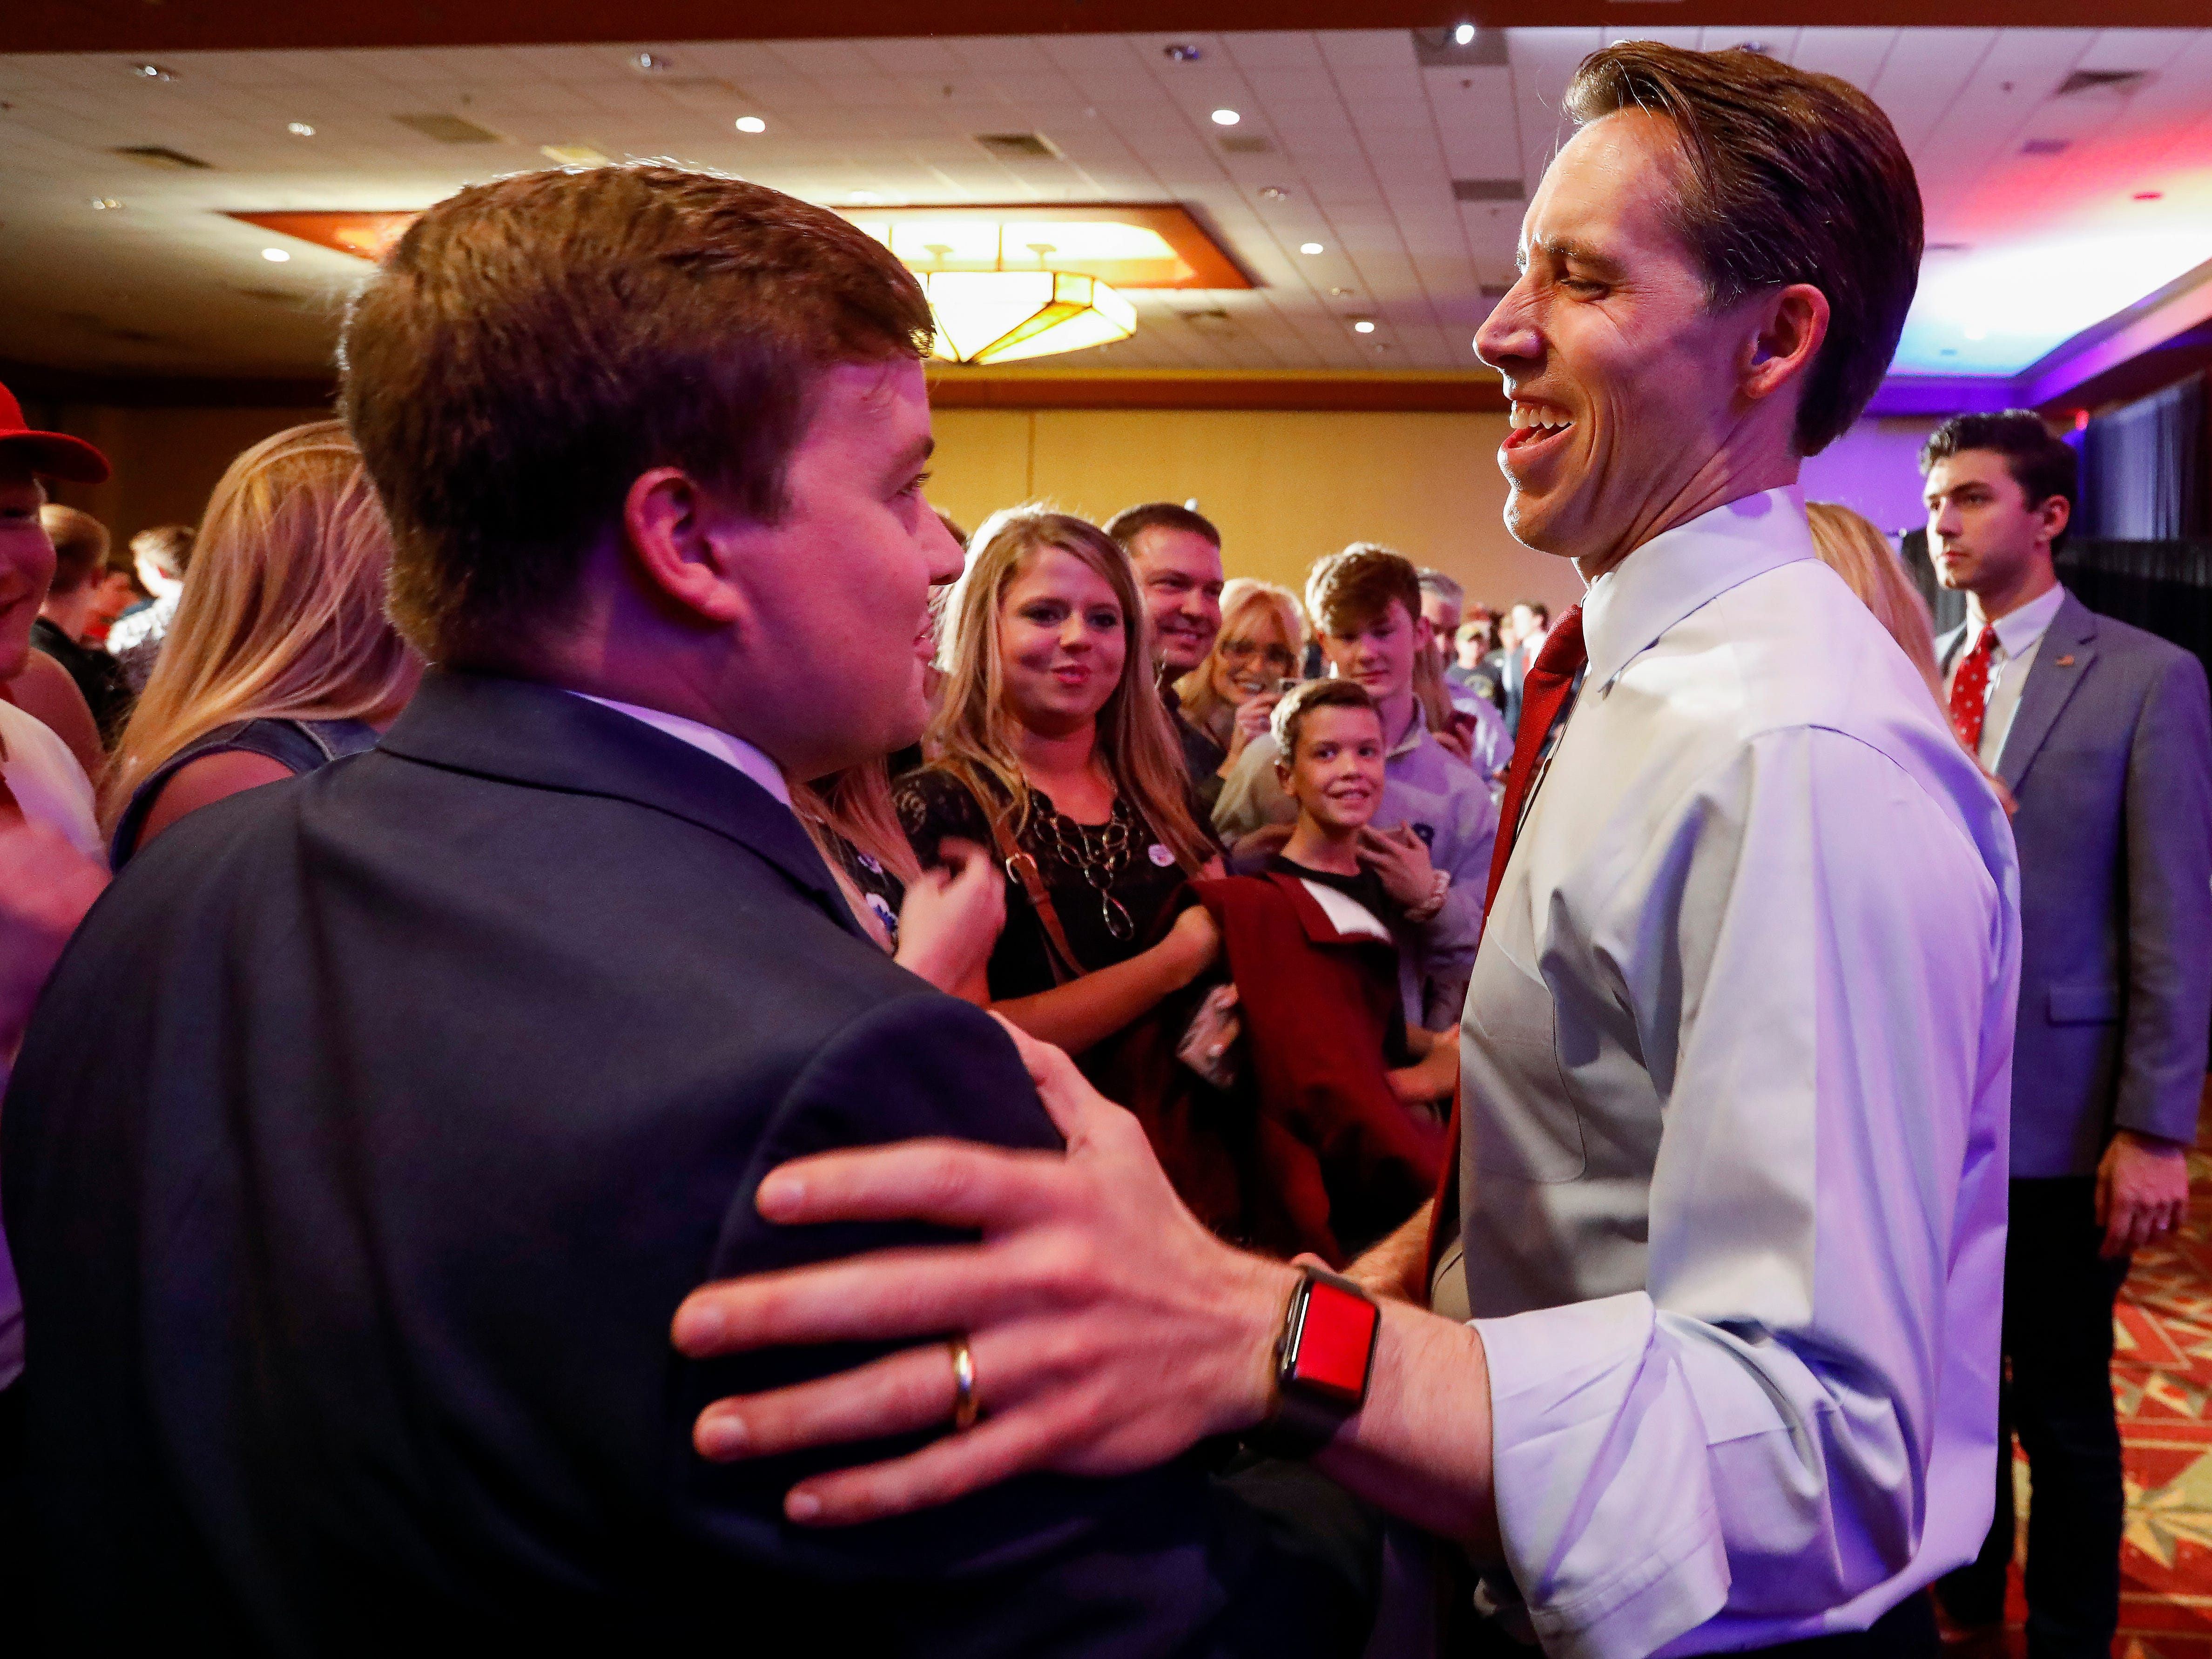 Senator elect Josh Hawley meets supporters at the Greene County Republican's watch party at the University Plaza hotel on Tuesday, Nov. 6, 2018.